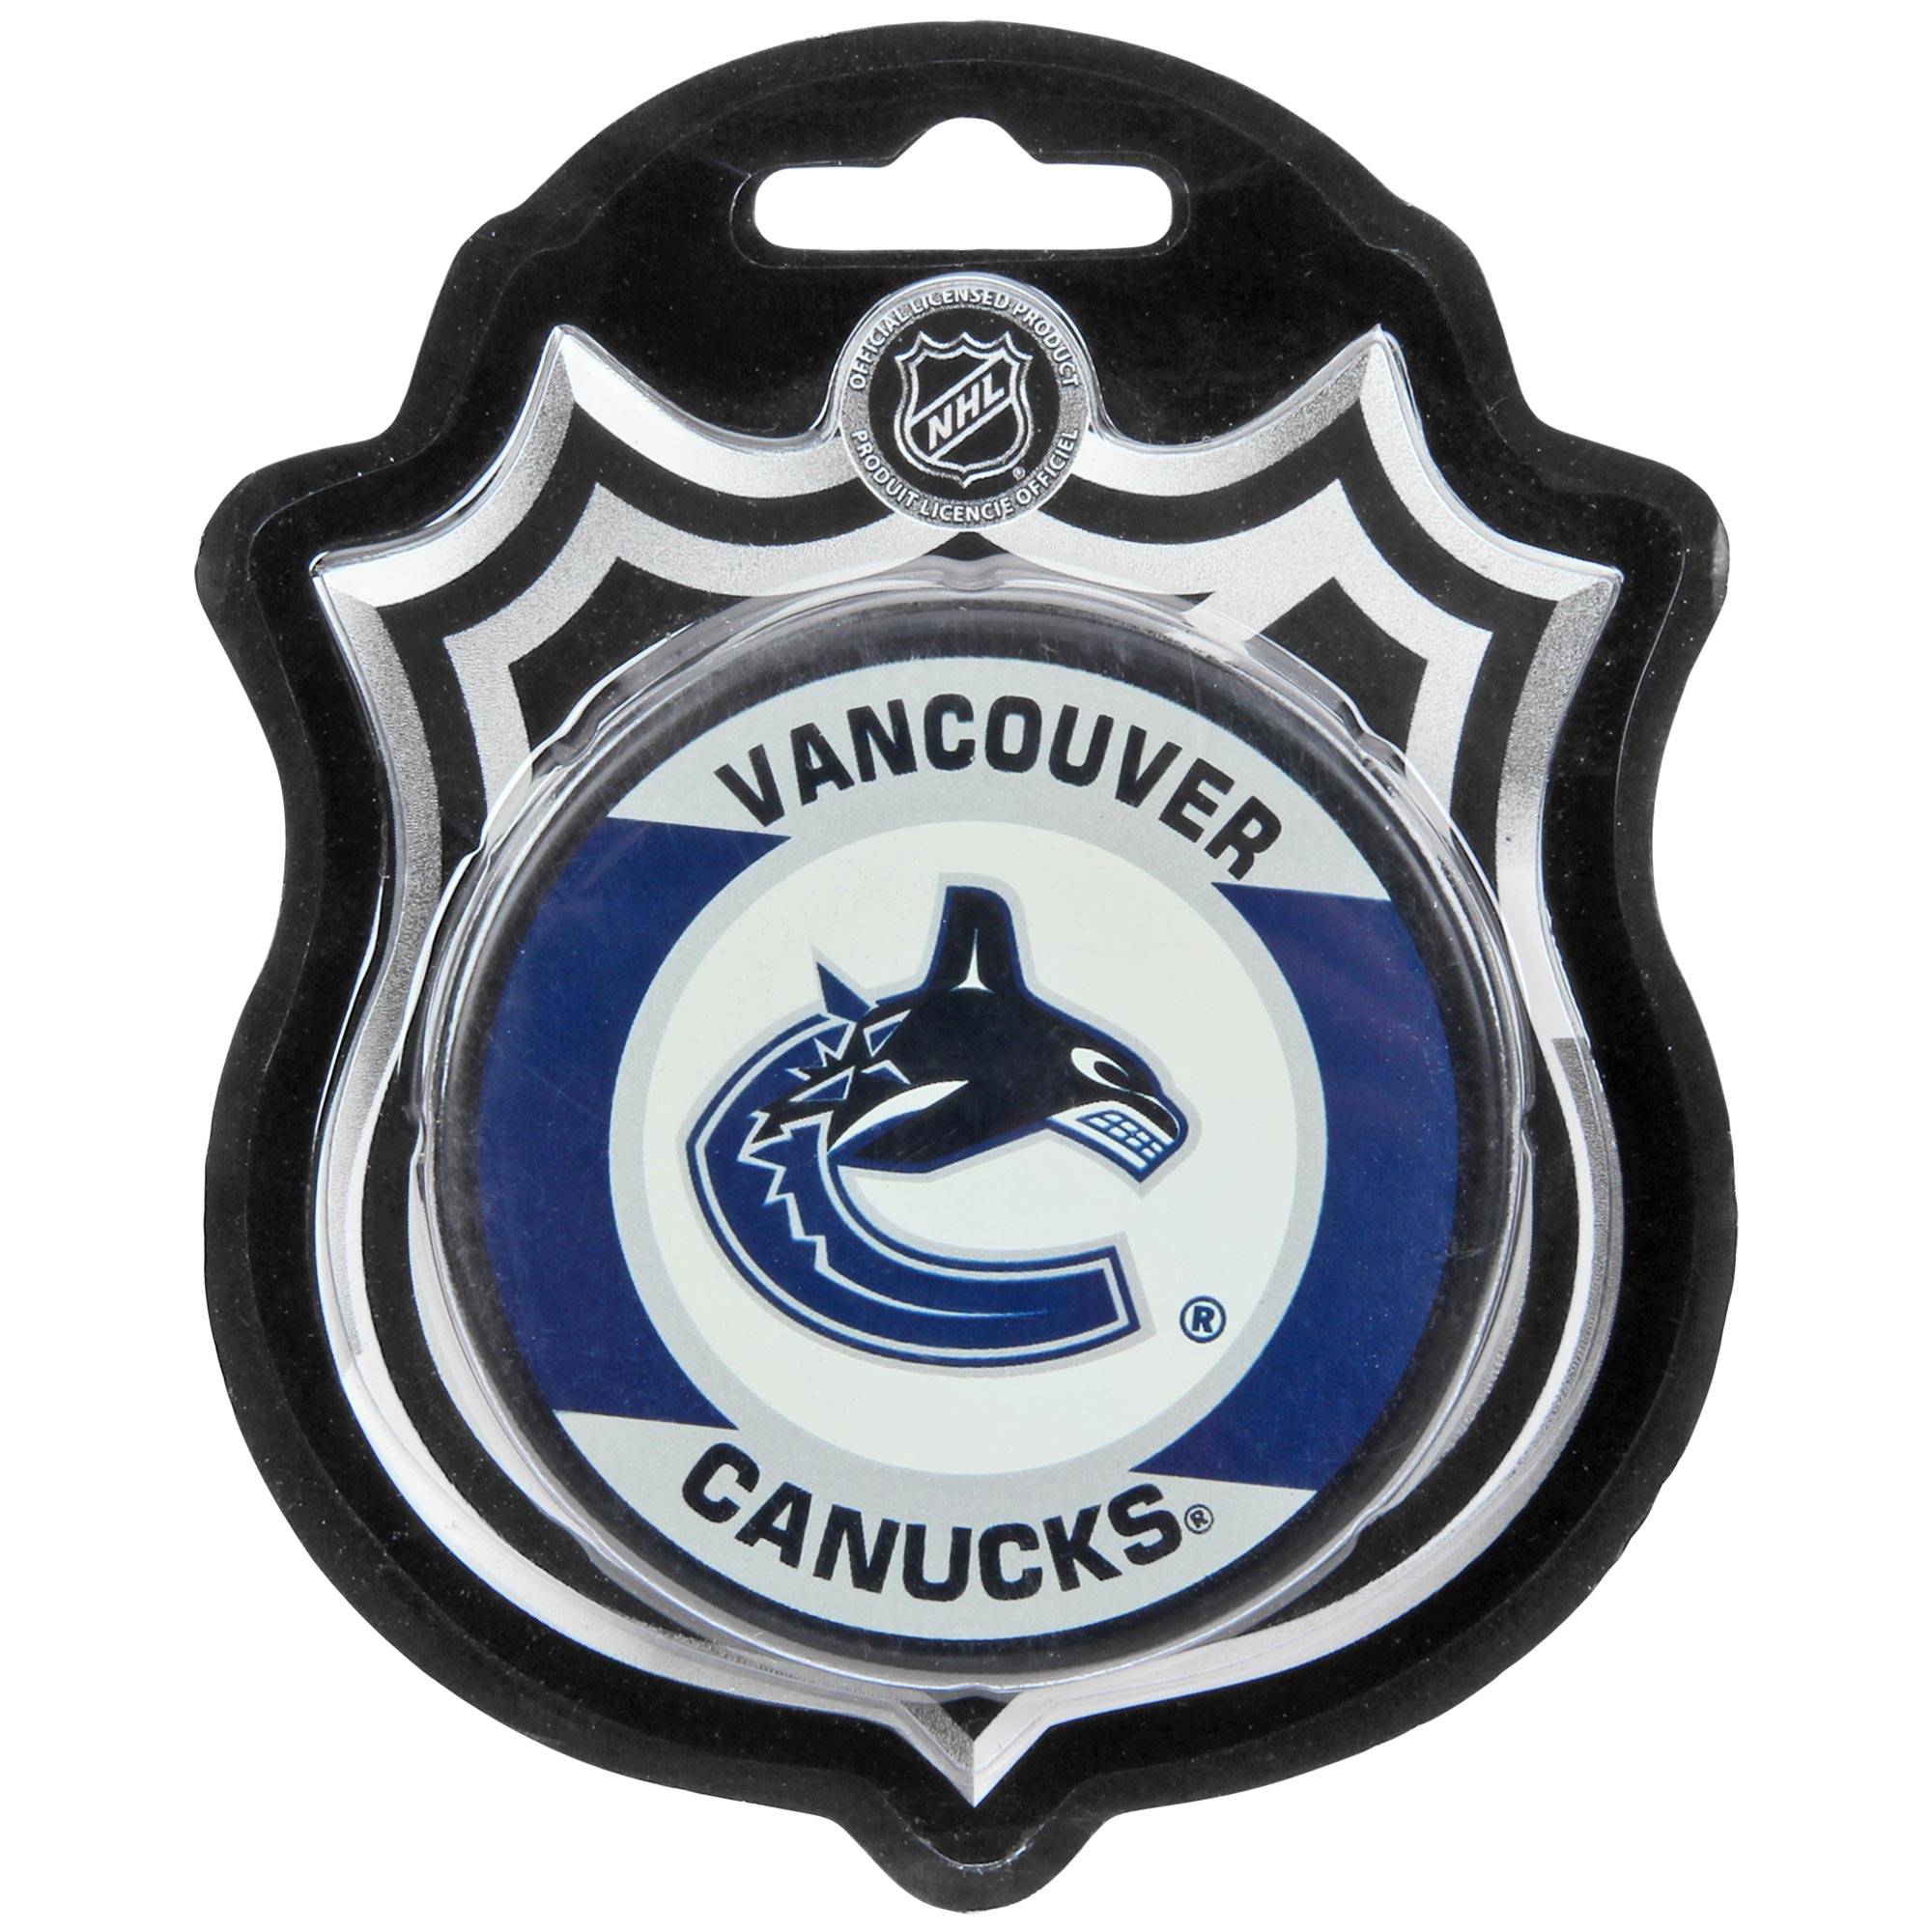 Vancouver Canucks Sher-Wood Retro Hockey Puck - No Size